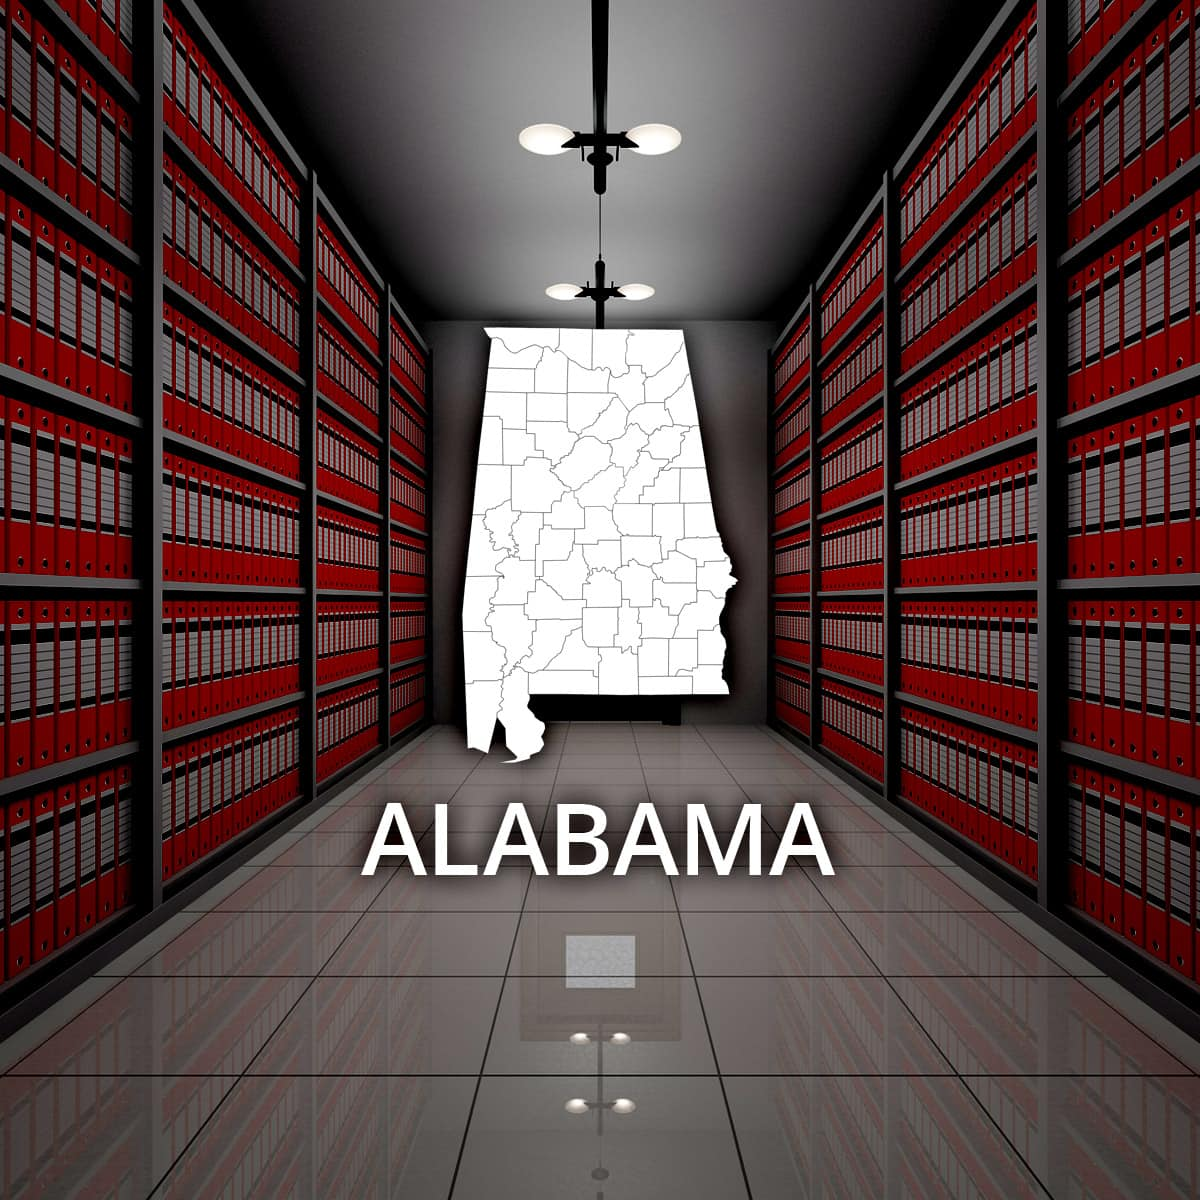 Alabama Public Records